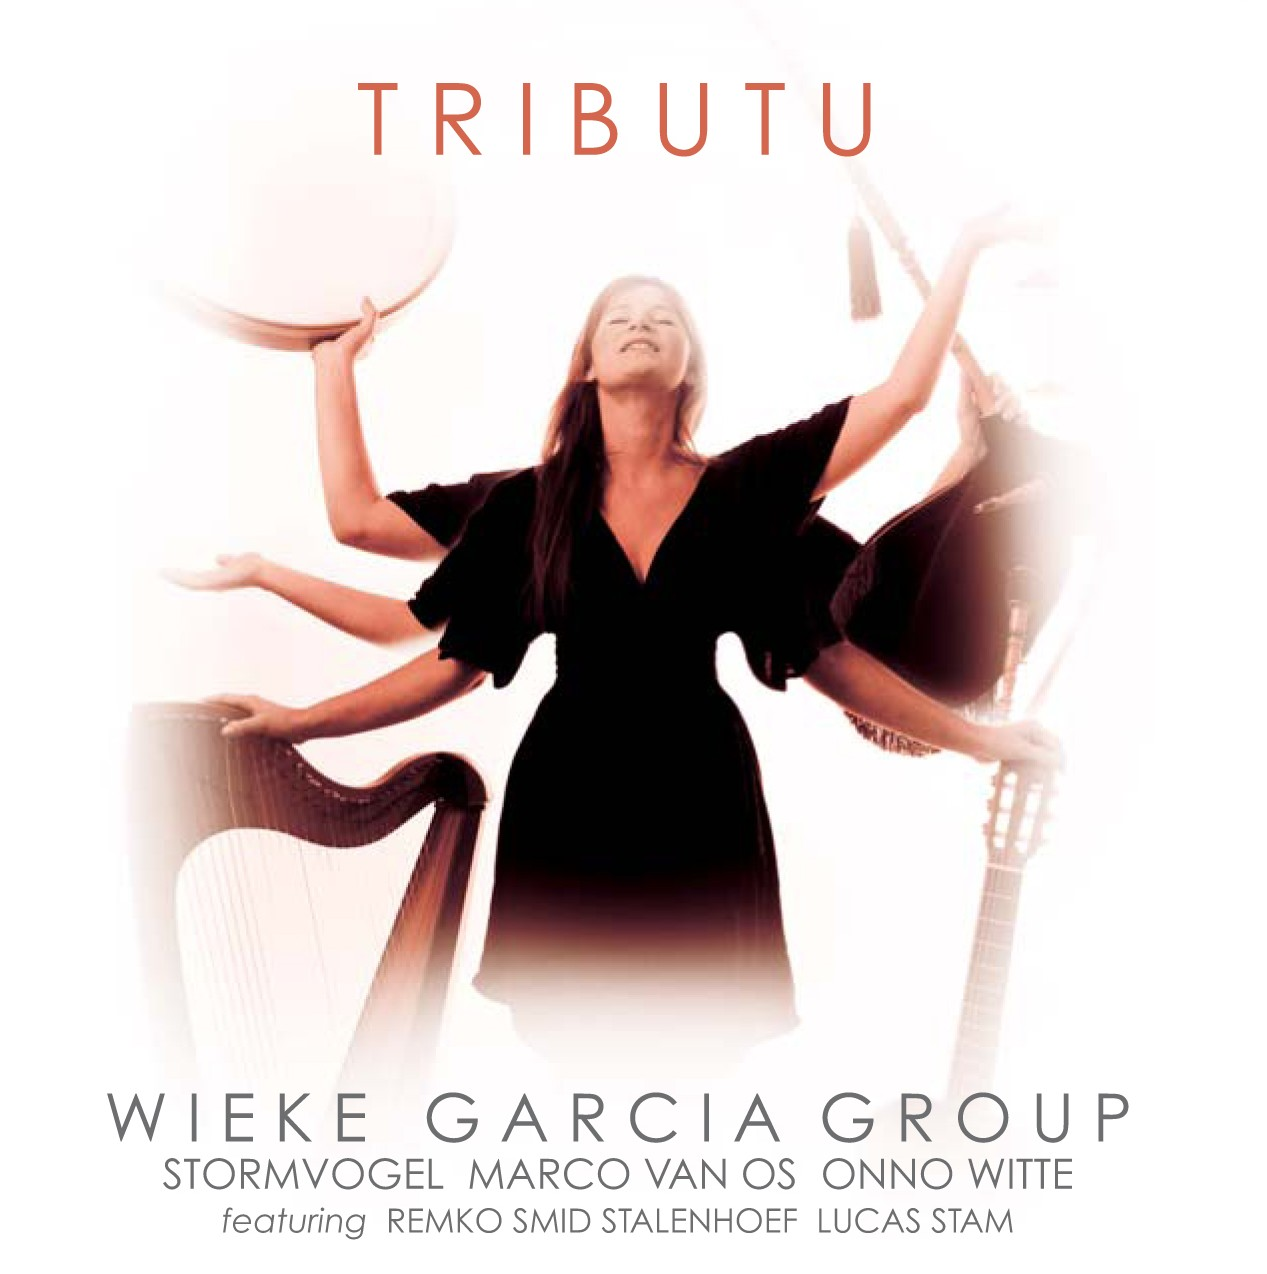 WIEKE GARCIA CD 'TRIBUTU' (2011) Stormvogel: music, production, design